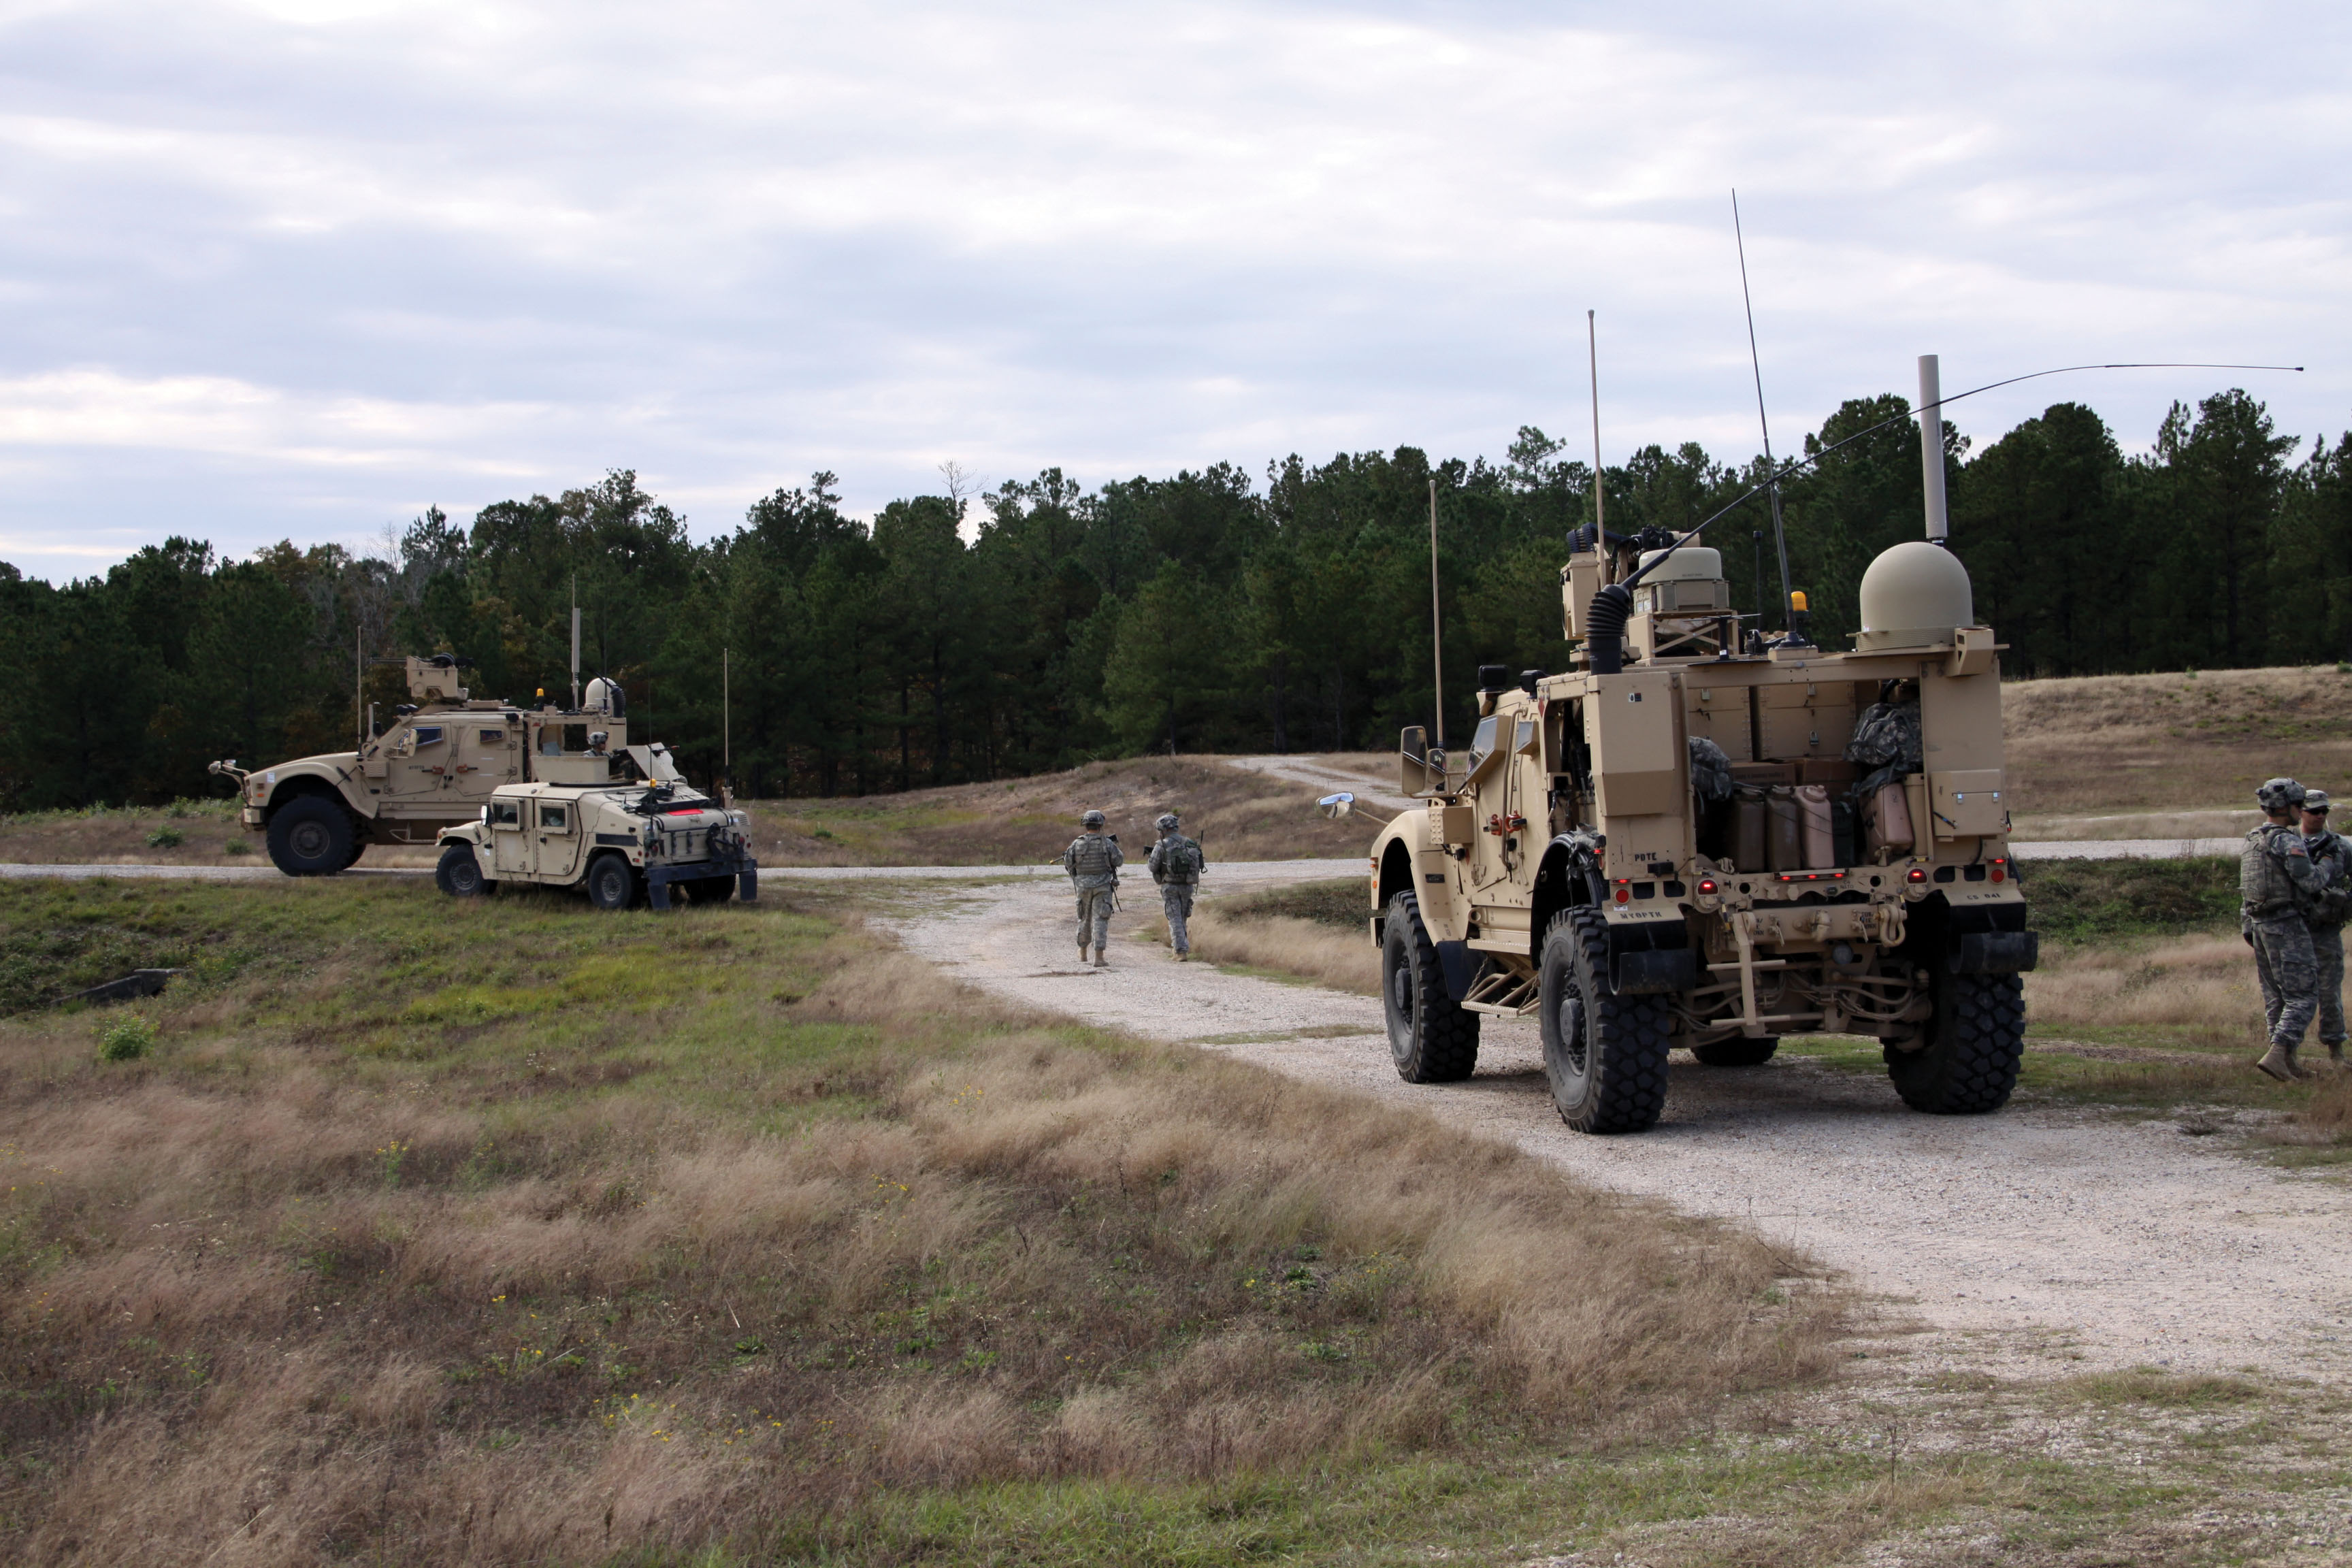 Soldiers with the 2nd BCT, 101st Airborne Division (Air Assault) train at the Joint Readiness Training Center (JRTC), Fort Polk, Louisanna, in November 2013 using vehicles, left and right, equipped with Warfighter Information Network - Tactical (WIN-T) Increment 2. Some WIN-T Network Operations tools enable communication officers to identify how well systems such as these are actually working on the battlefield, so as units move out in any direction, they can more easily manage the network and keep links connected. (Photo courtesy of JRTC Operations Group Public Affairs)